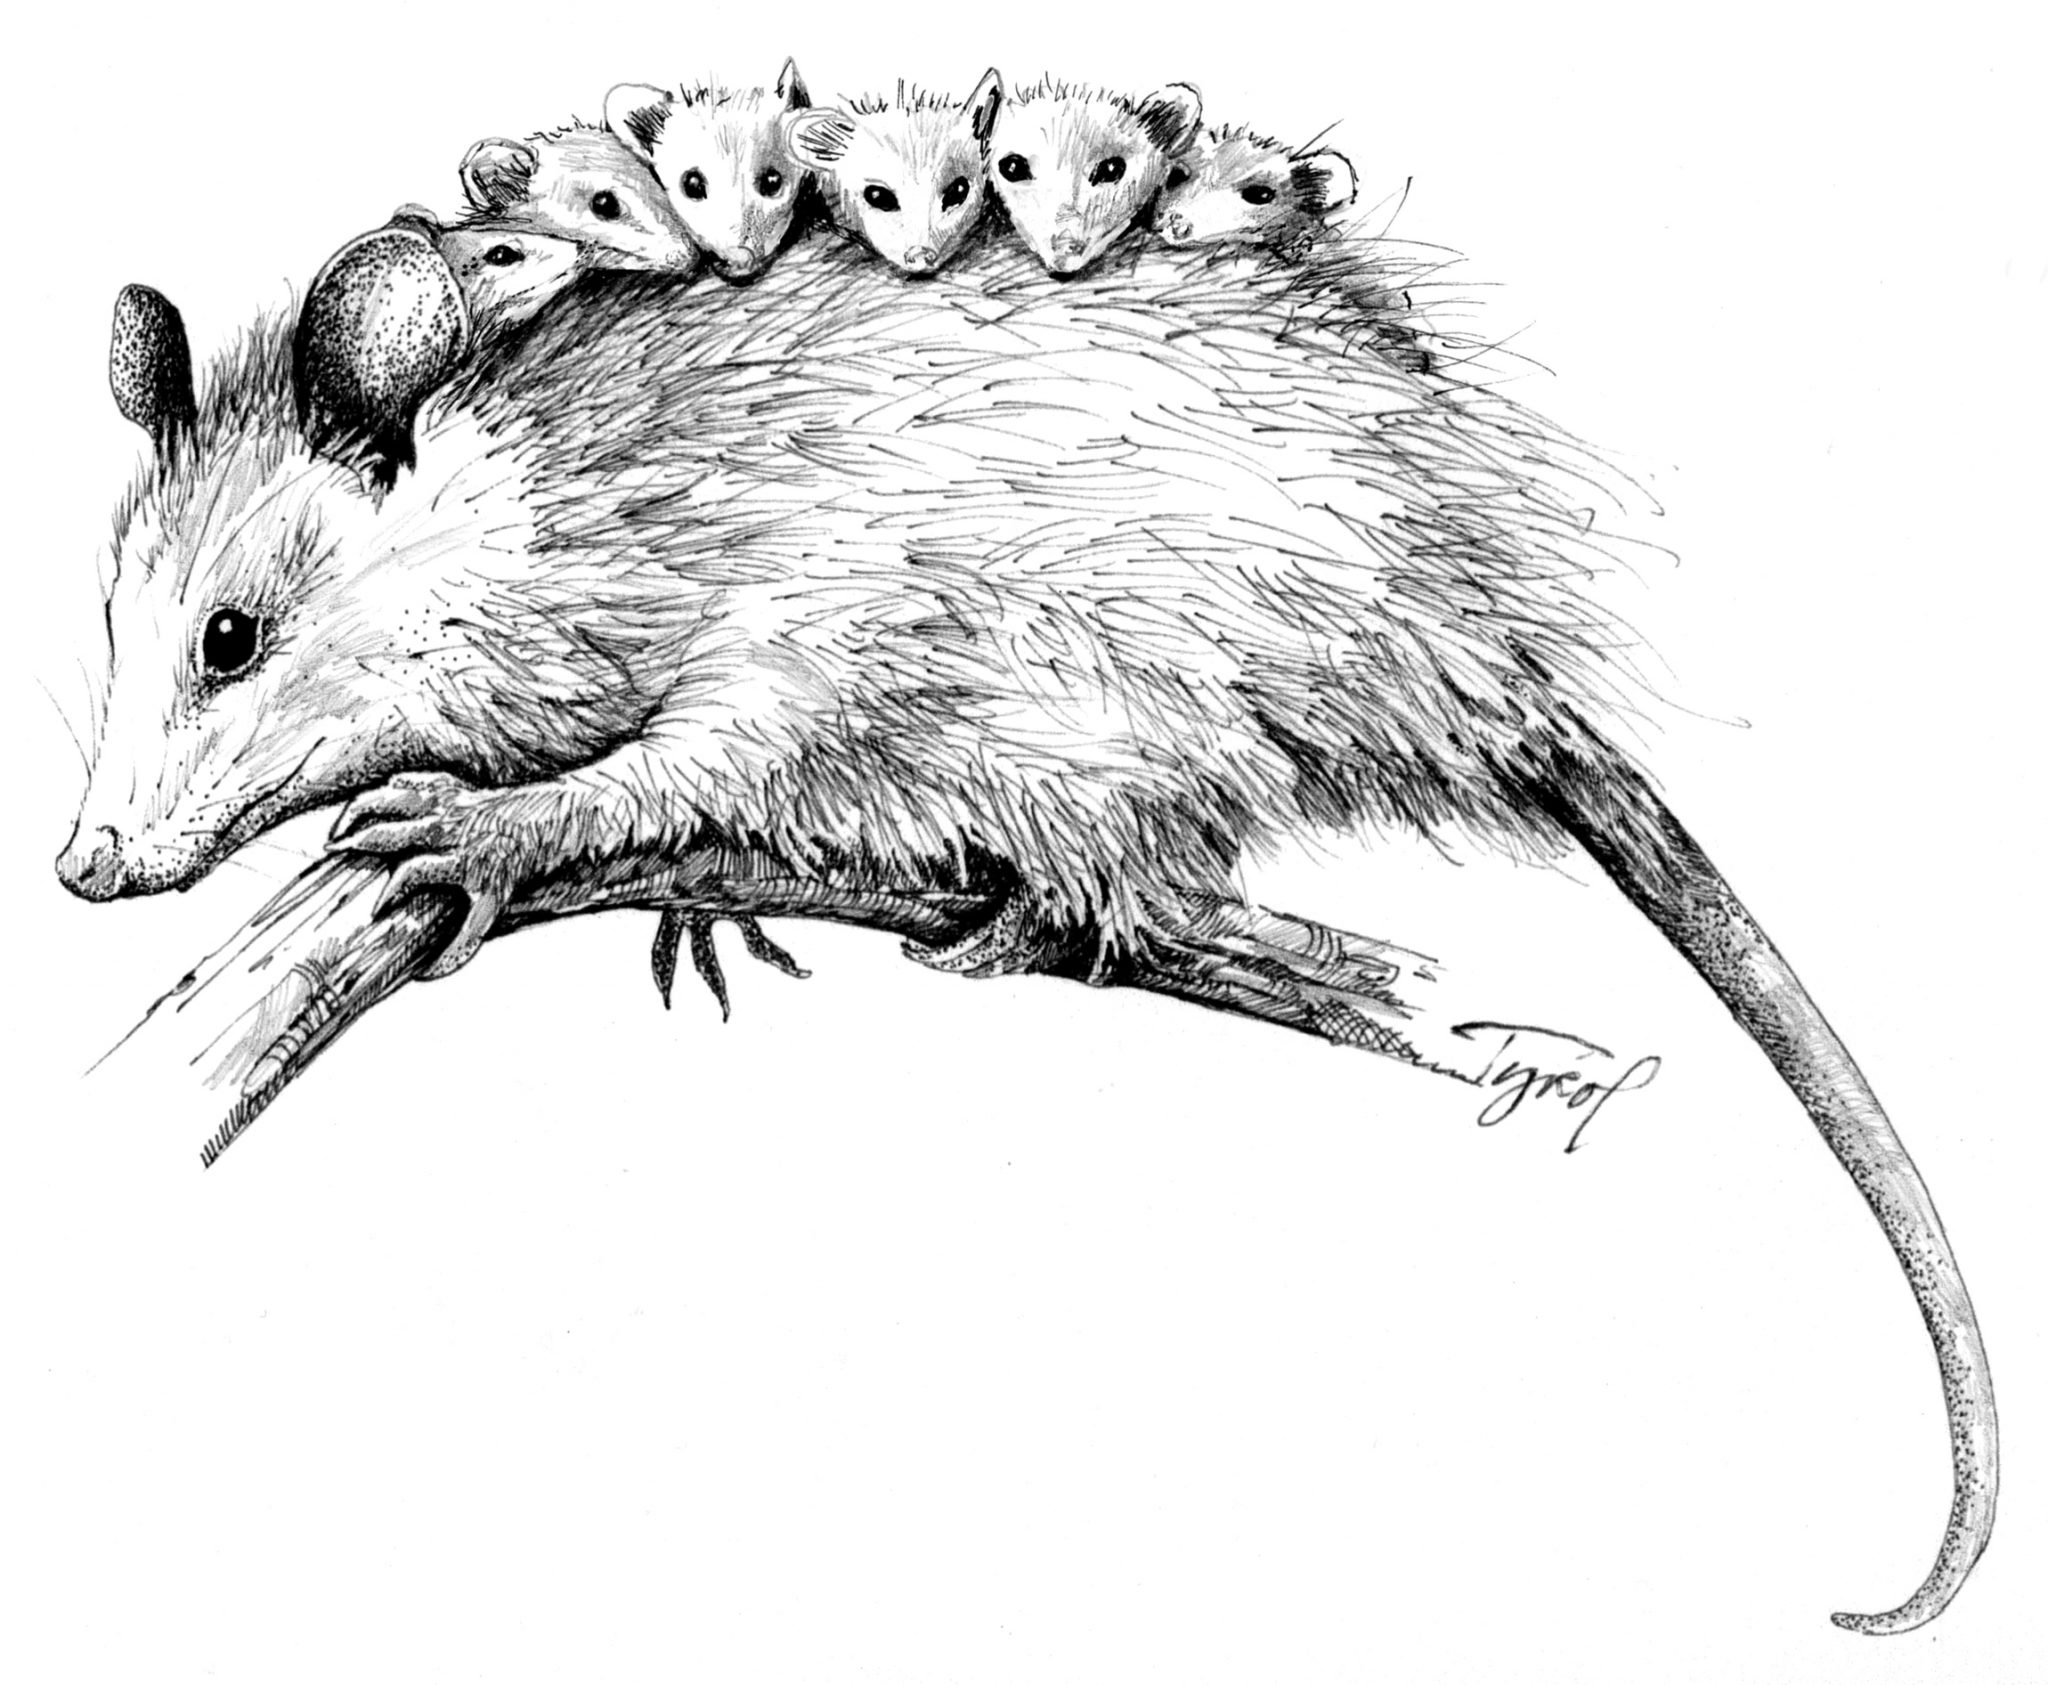 Uncategorized Possum Drawing the opossum live weird die young adirondack almanack on our back porch in a pocket of light from window was what looked to be an oversized rat wearing white face powder as it gobbled